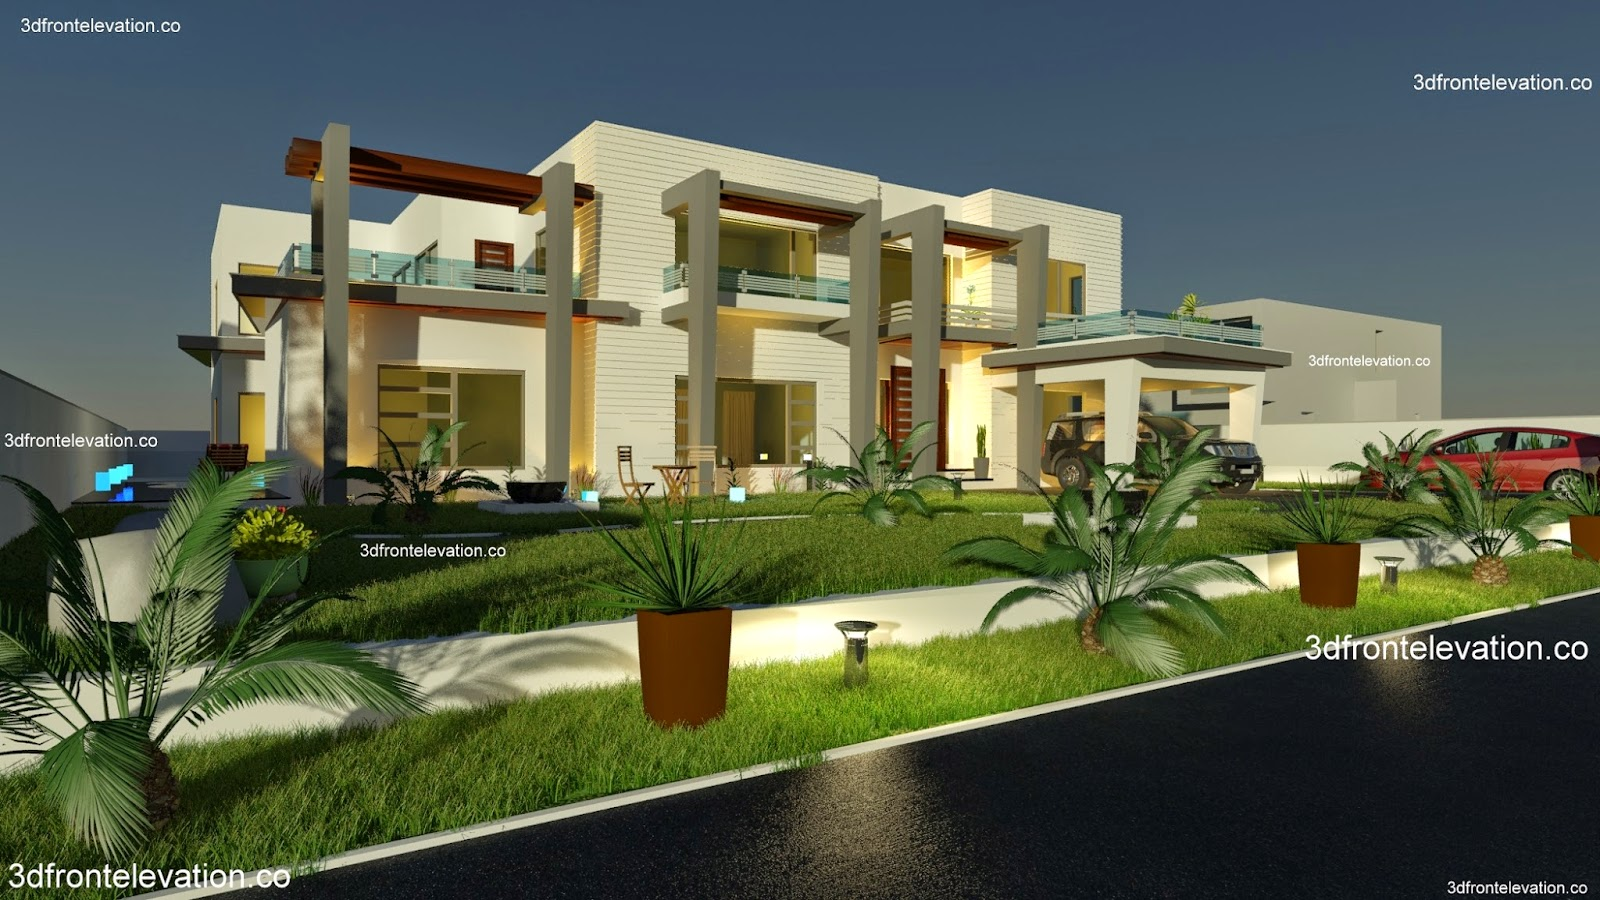 50 yard home design casatreschic interior 2000 sq yard for 50 yards house design